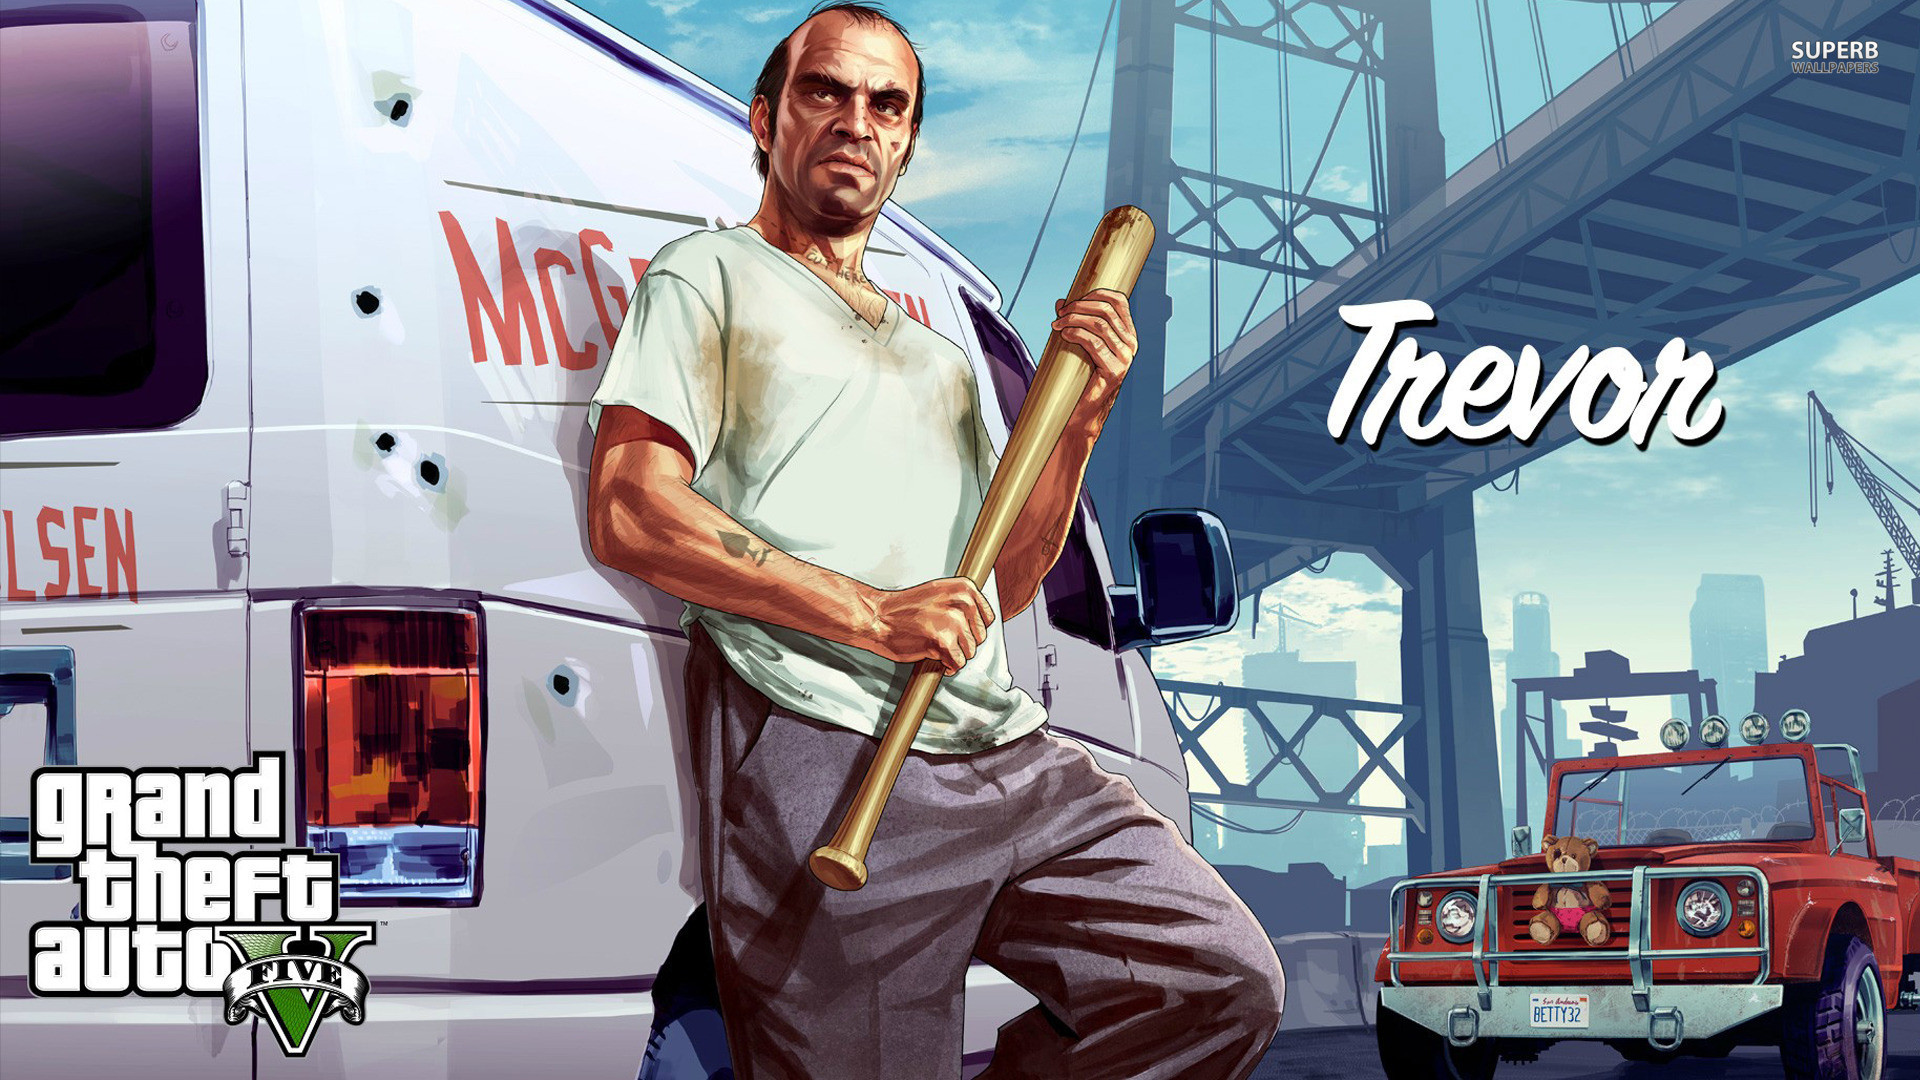 Wallpaper Gta Collection For Free Download